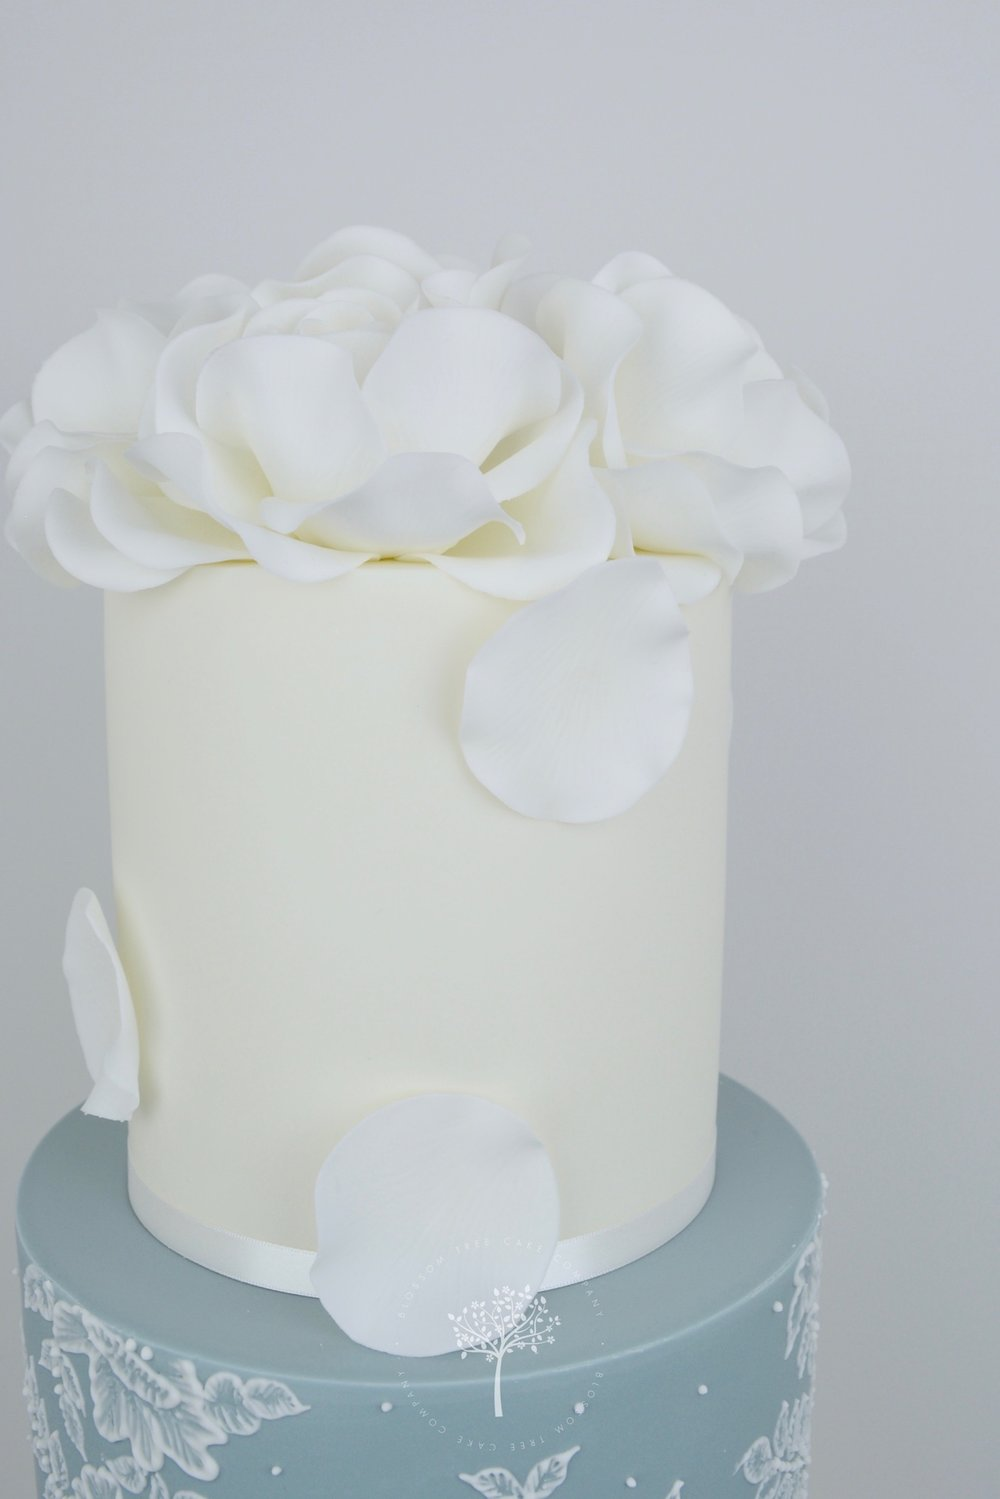 White Roses and Lace wedding cake by Blossom Tree Cake Company Harrogate North Yorkshire - top sugar roses.jpg